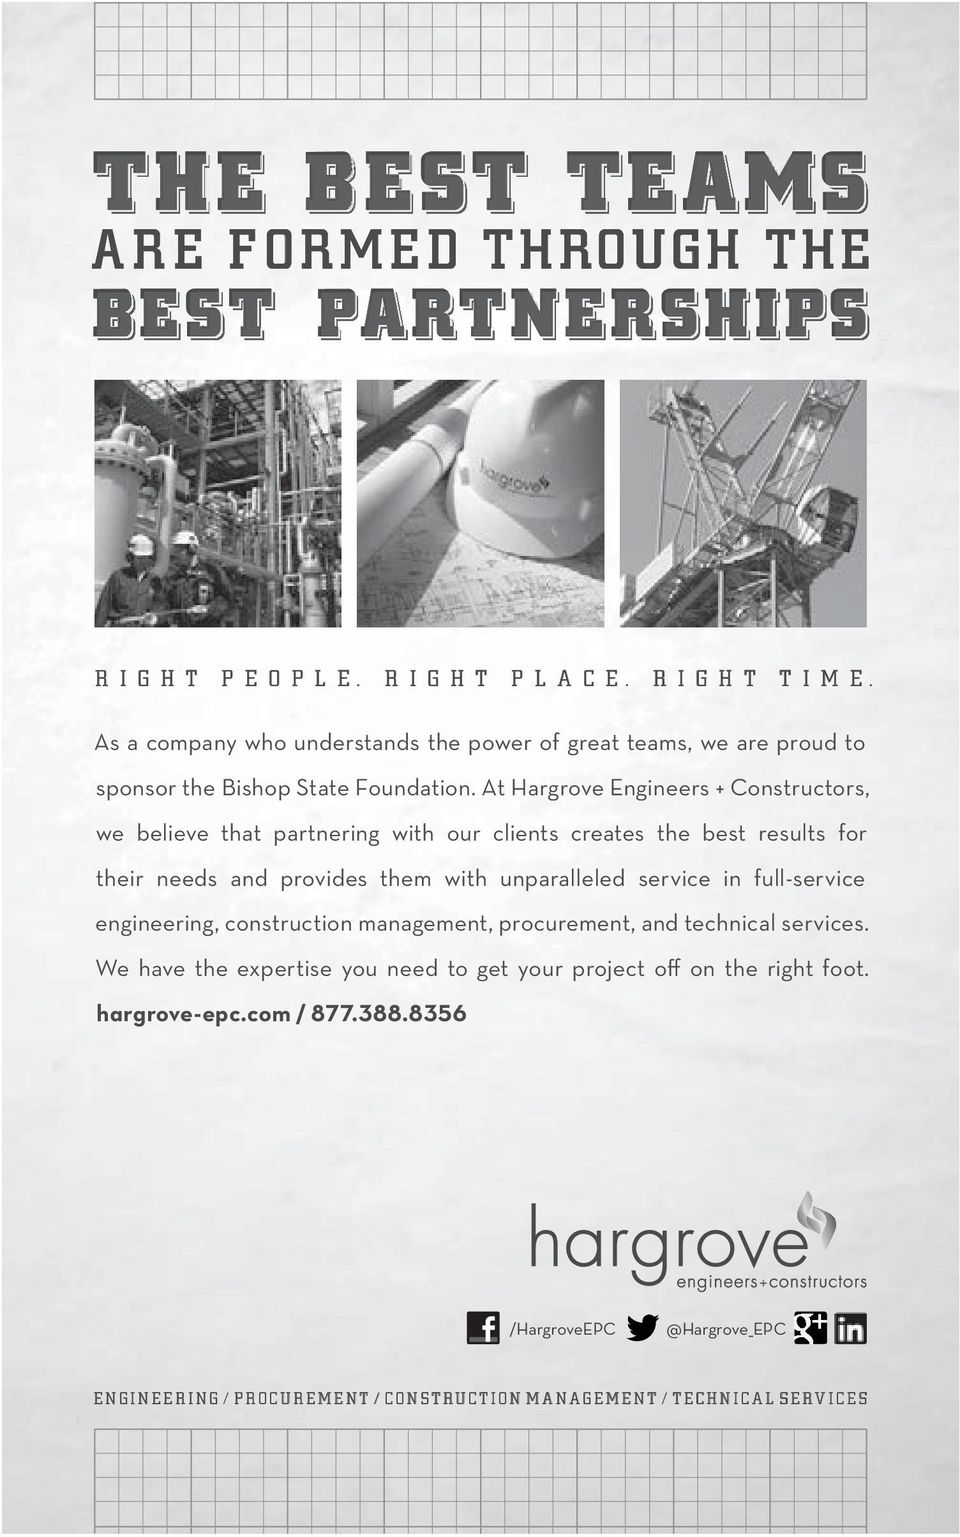 At Hargrove Engineers + Constructors, we believe that partnering with our clients creates the best results for their needs and provides them with unparalleled service in